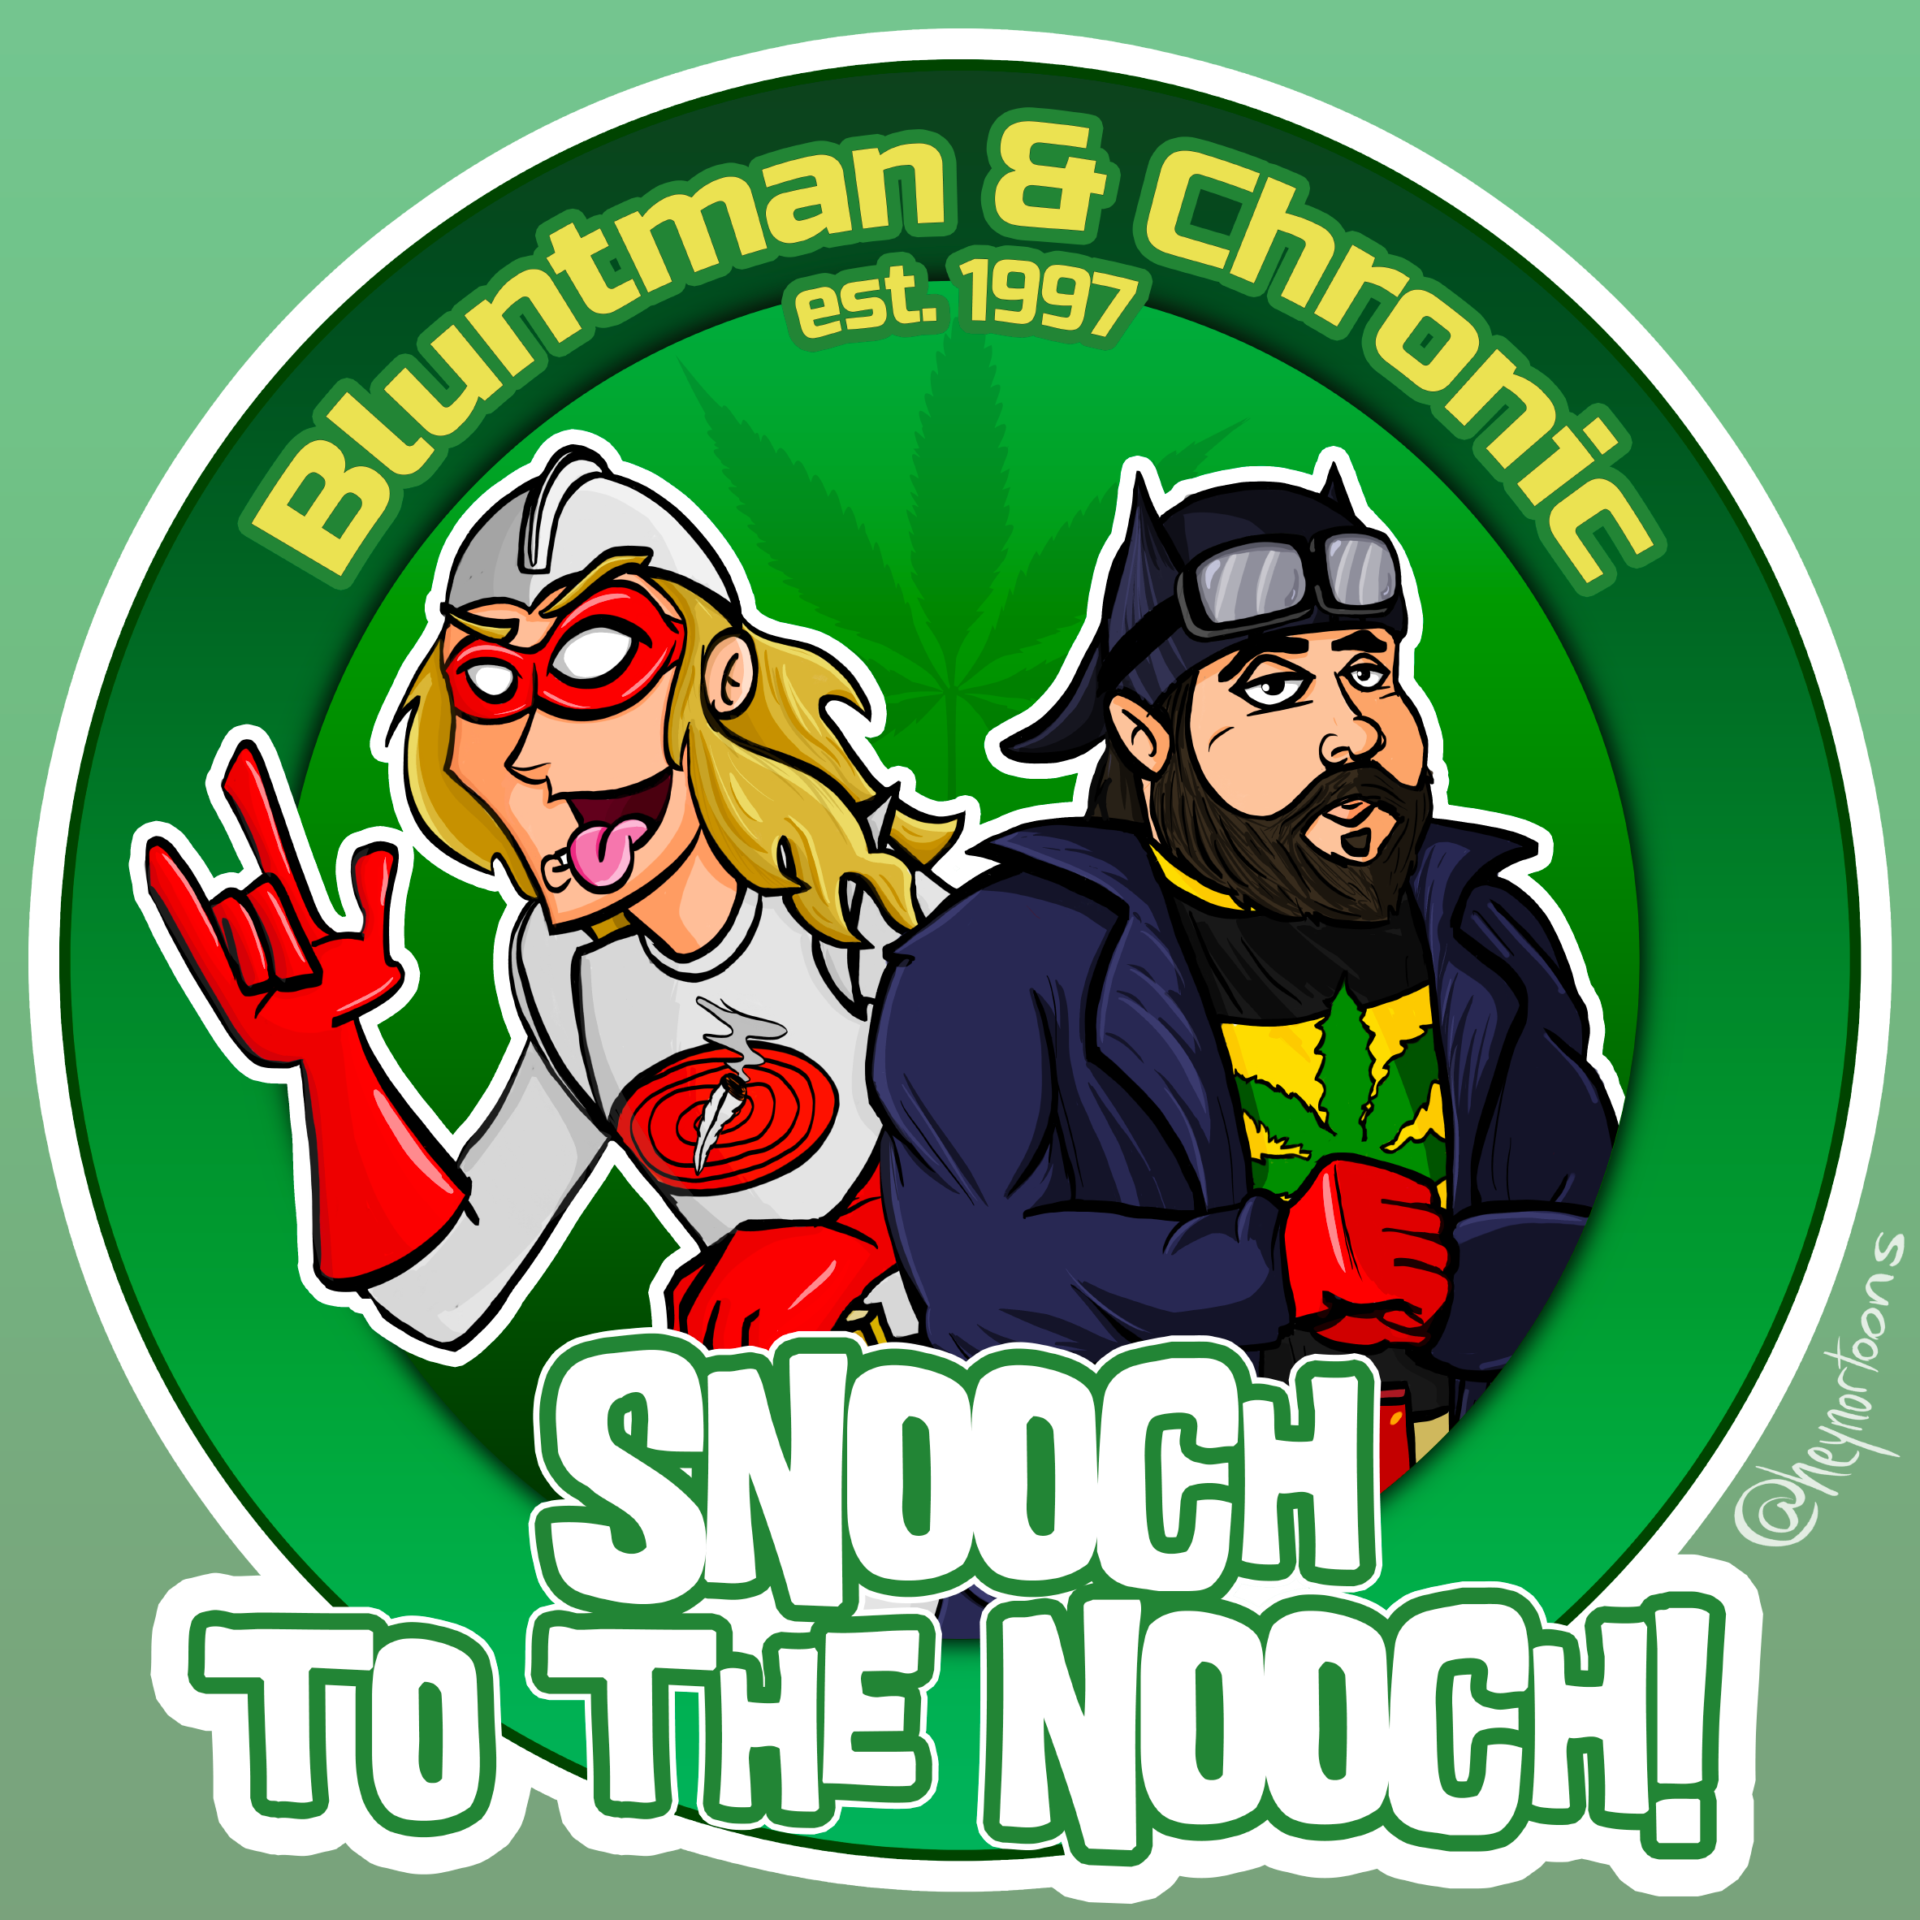 Bluntman and Chronic est. 1997: Snooch to the Nooch!